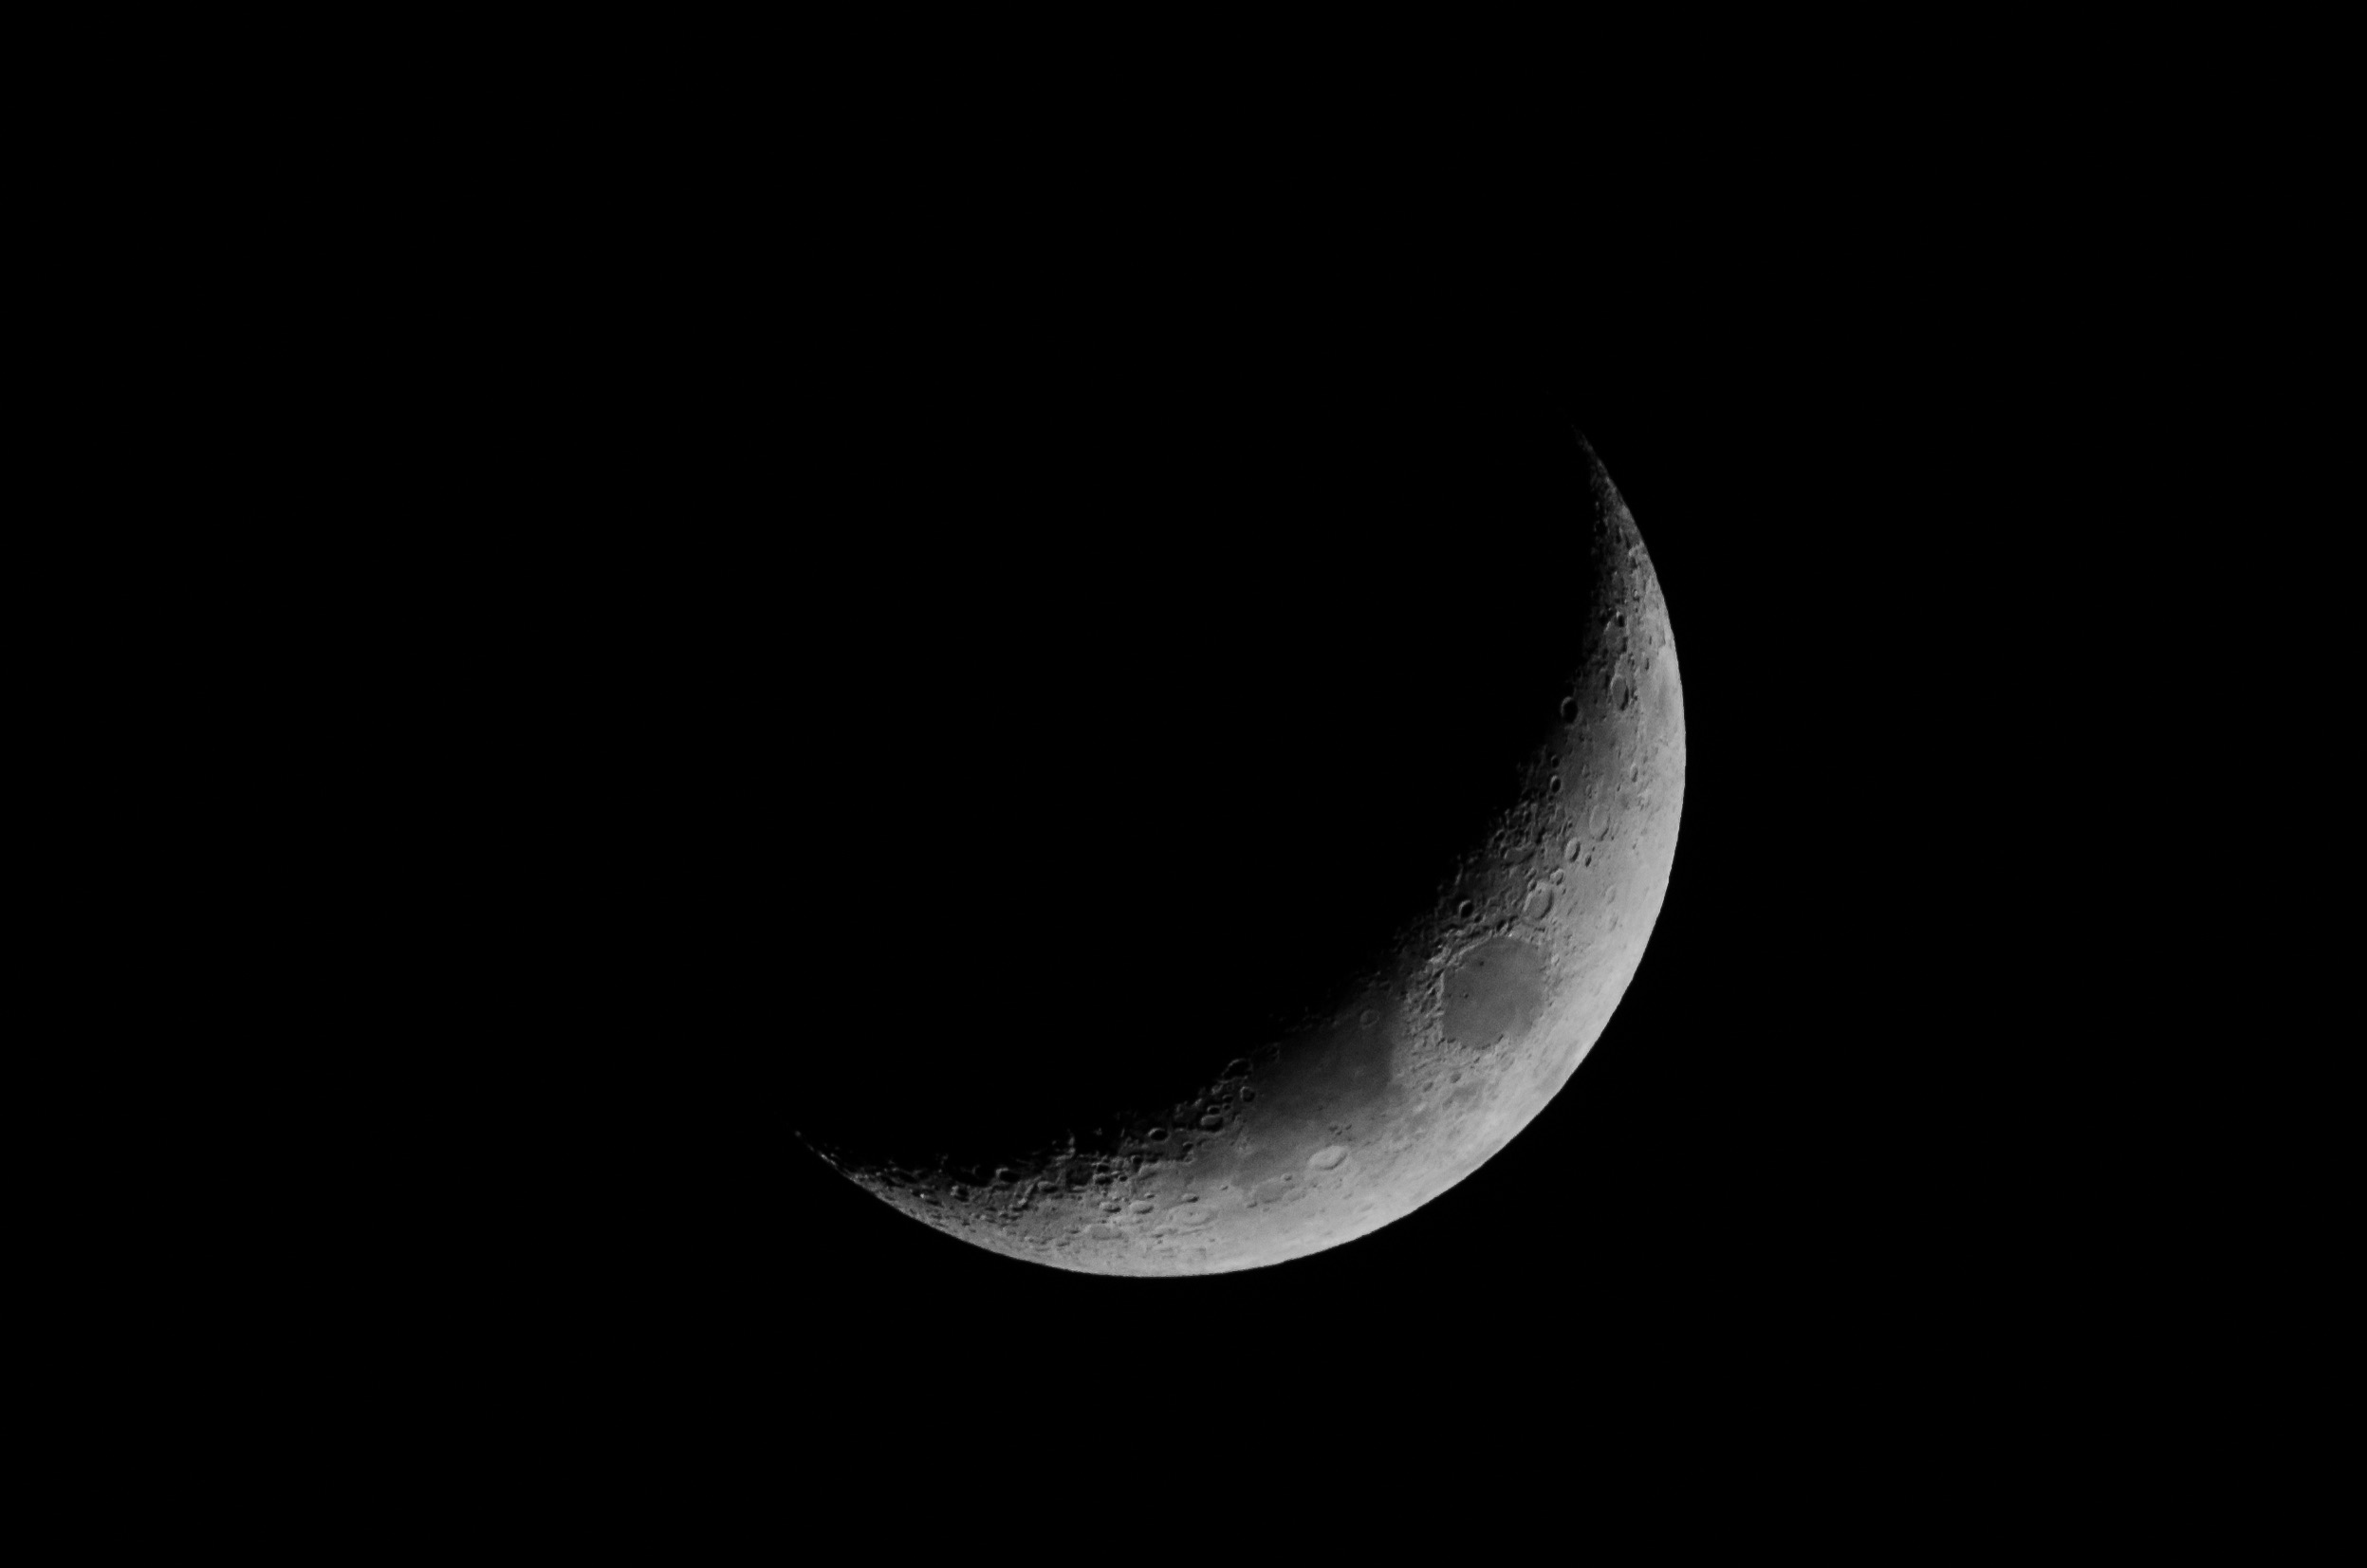 Waxing Crescent Moon  Nikon D7000 ISO 400 600mm f/11 1/250 sec